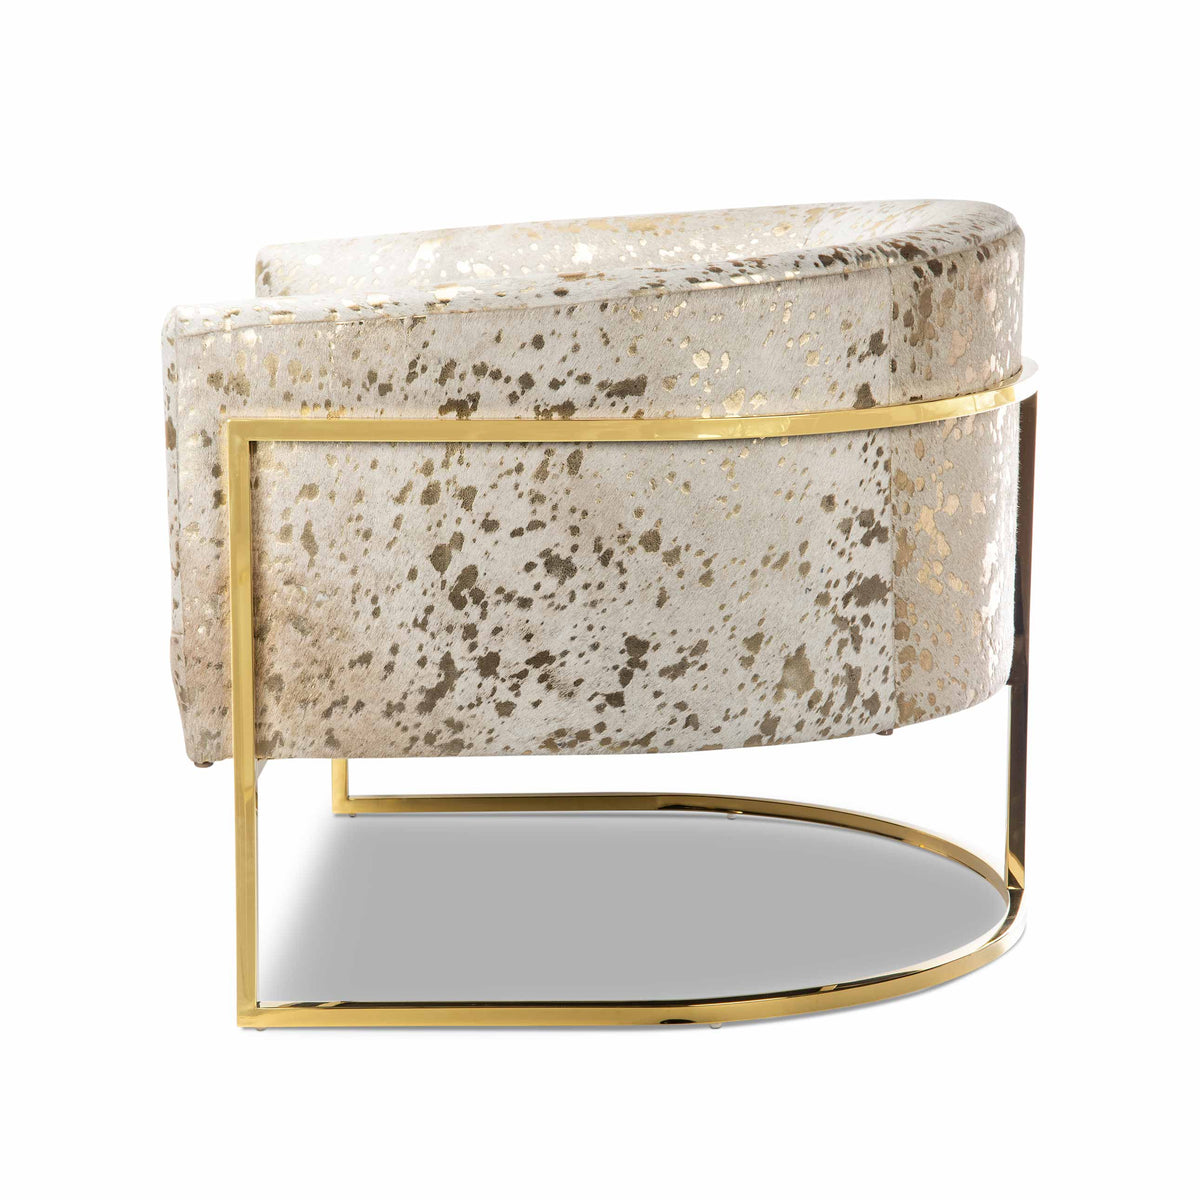 Lisbon Chair in Gold Speckled Cowhide